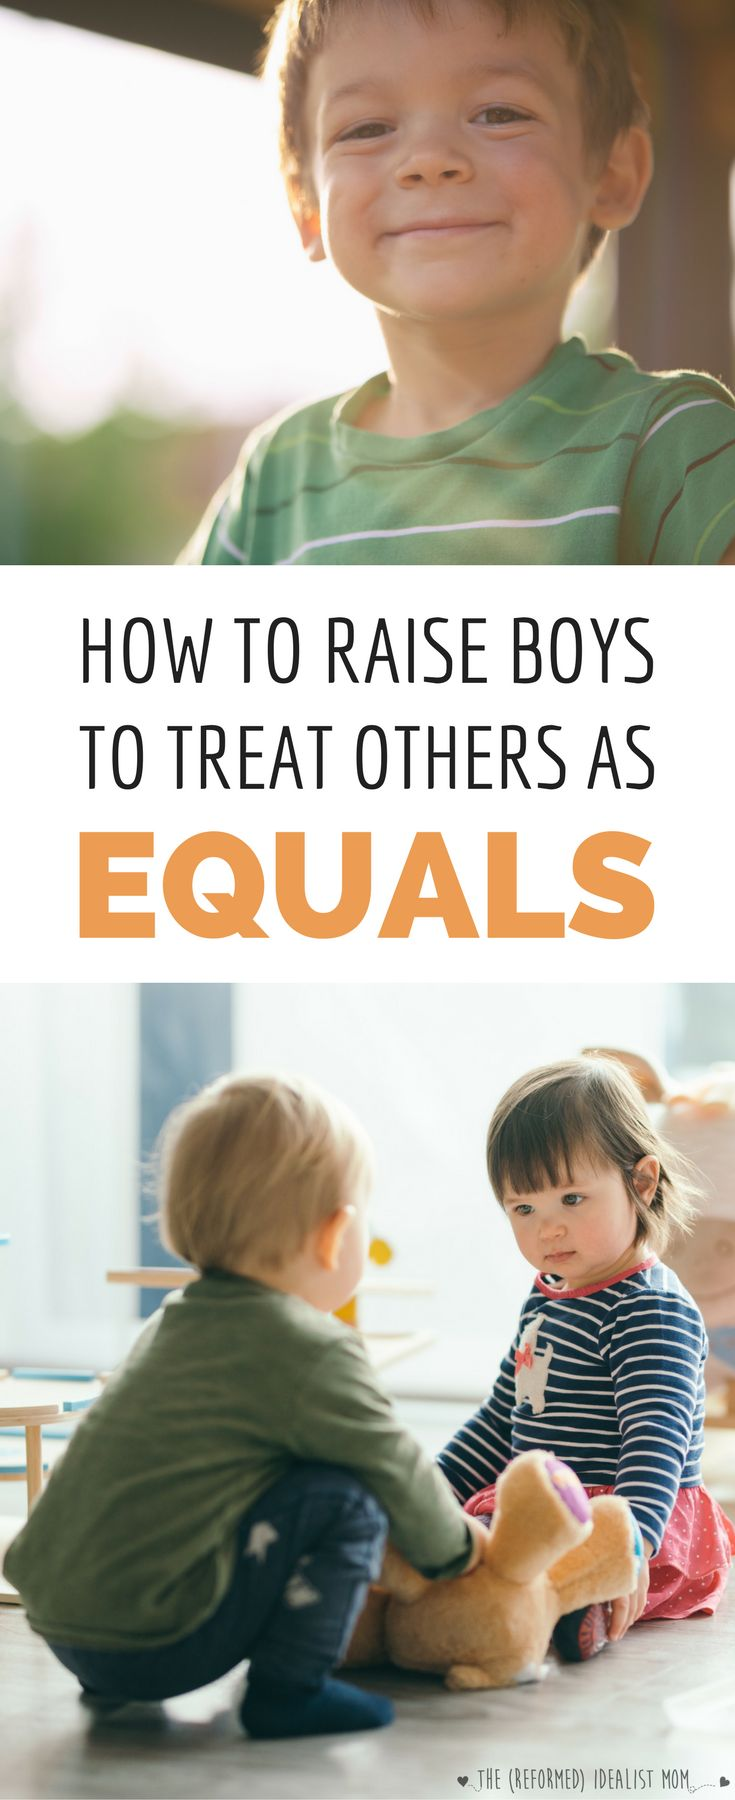 Every boy mom wants to raise her son to treat others with kindness and respect, but how do you do it? Here are 5 simple but powerful ways you can teach boys to respect women and girls.